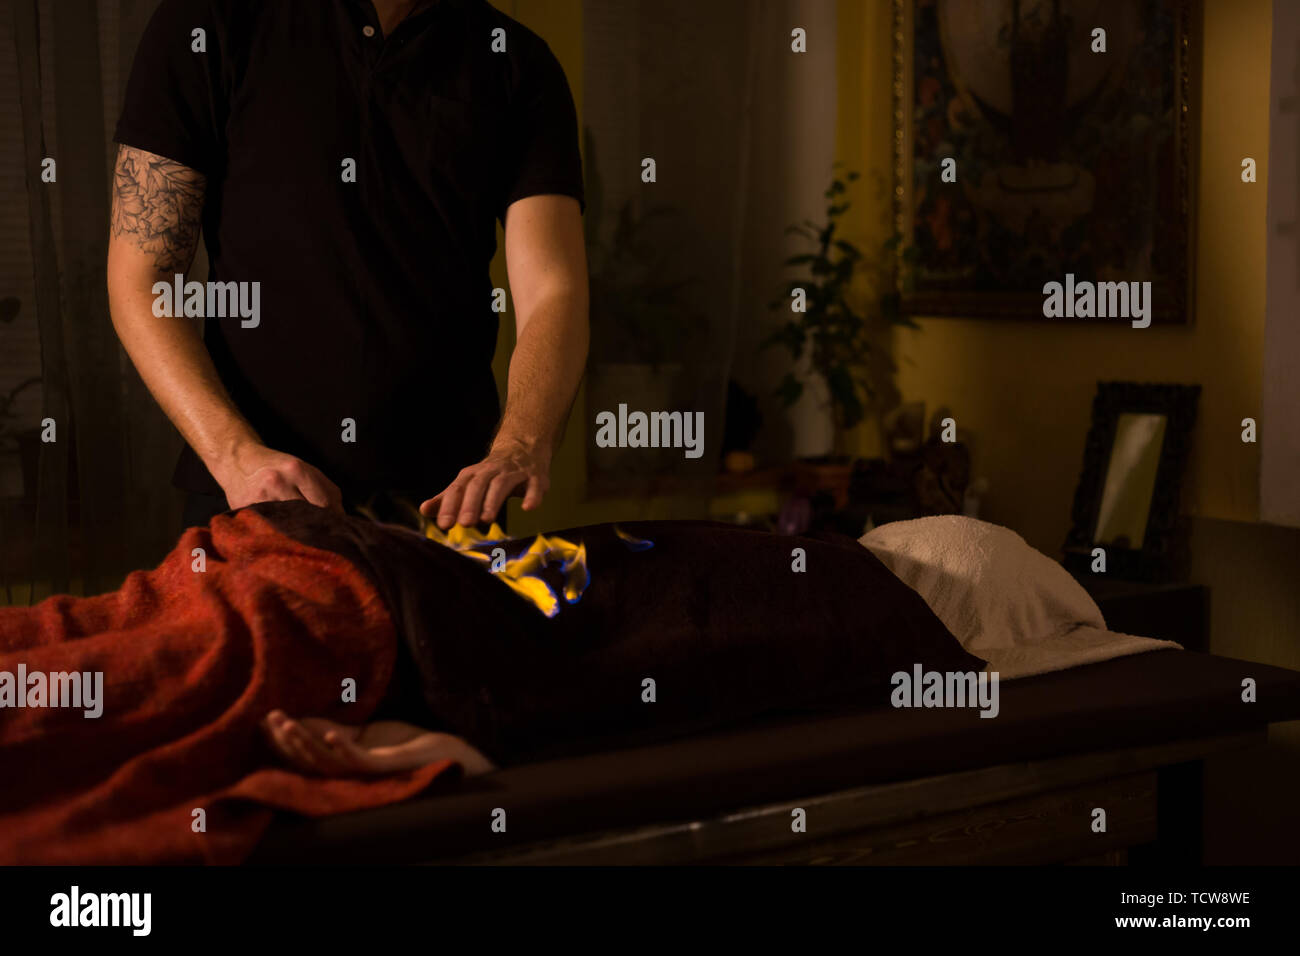 Chinese fire massage and therapy - Stock Image